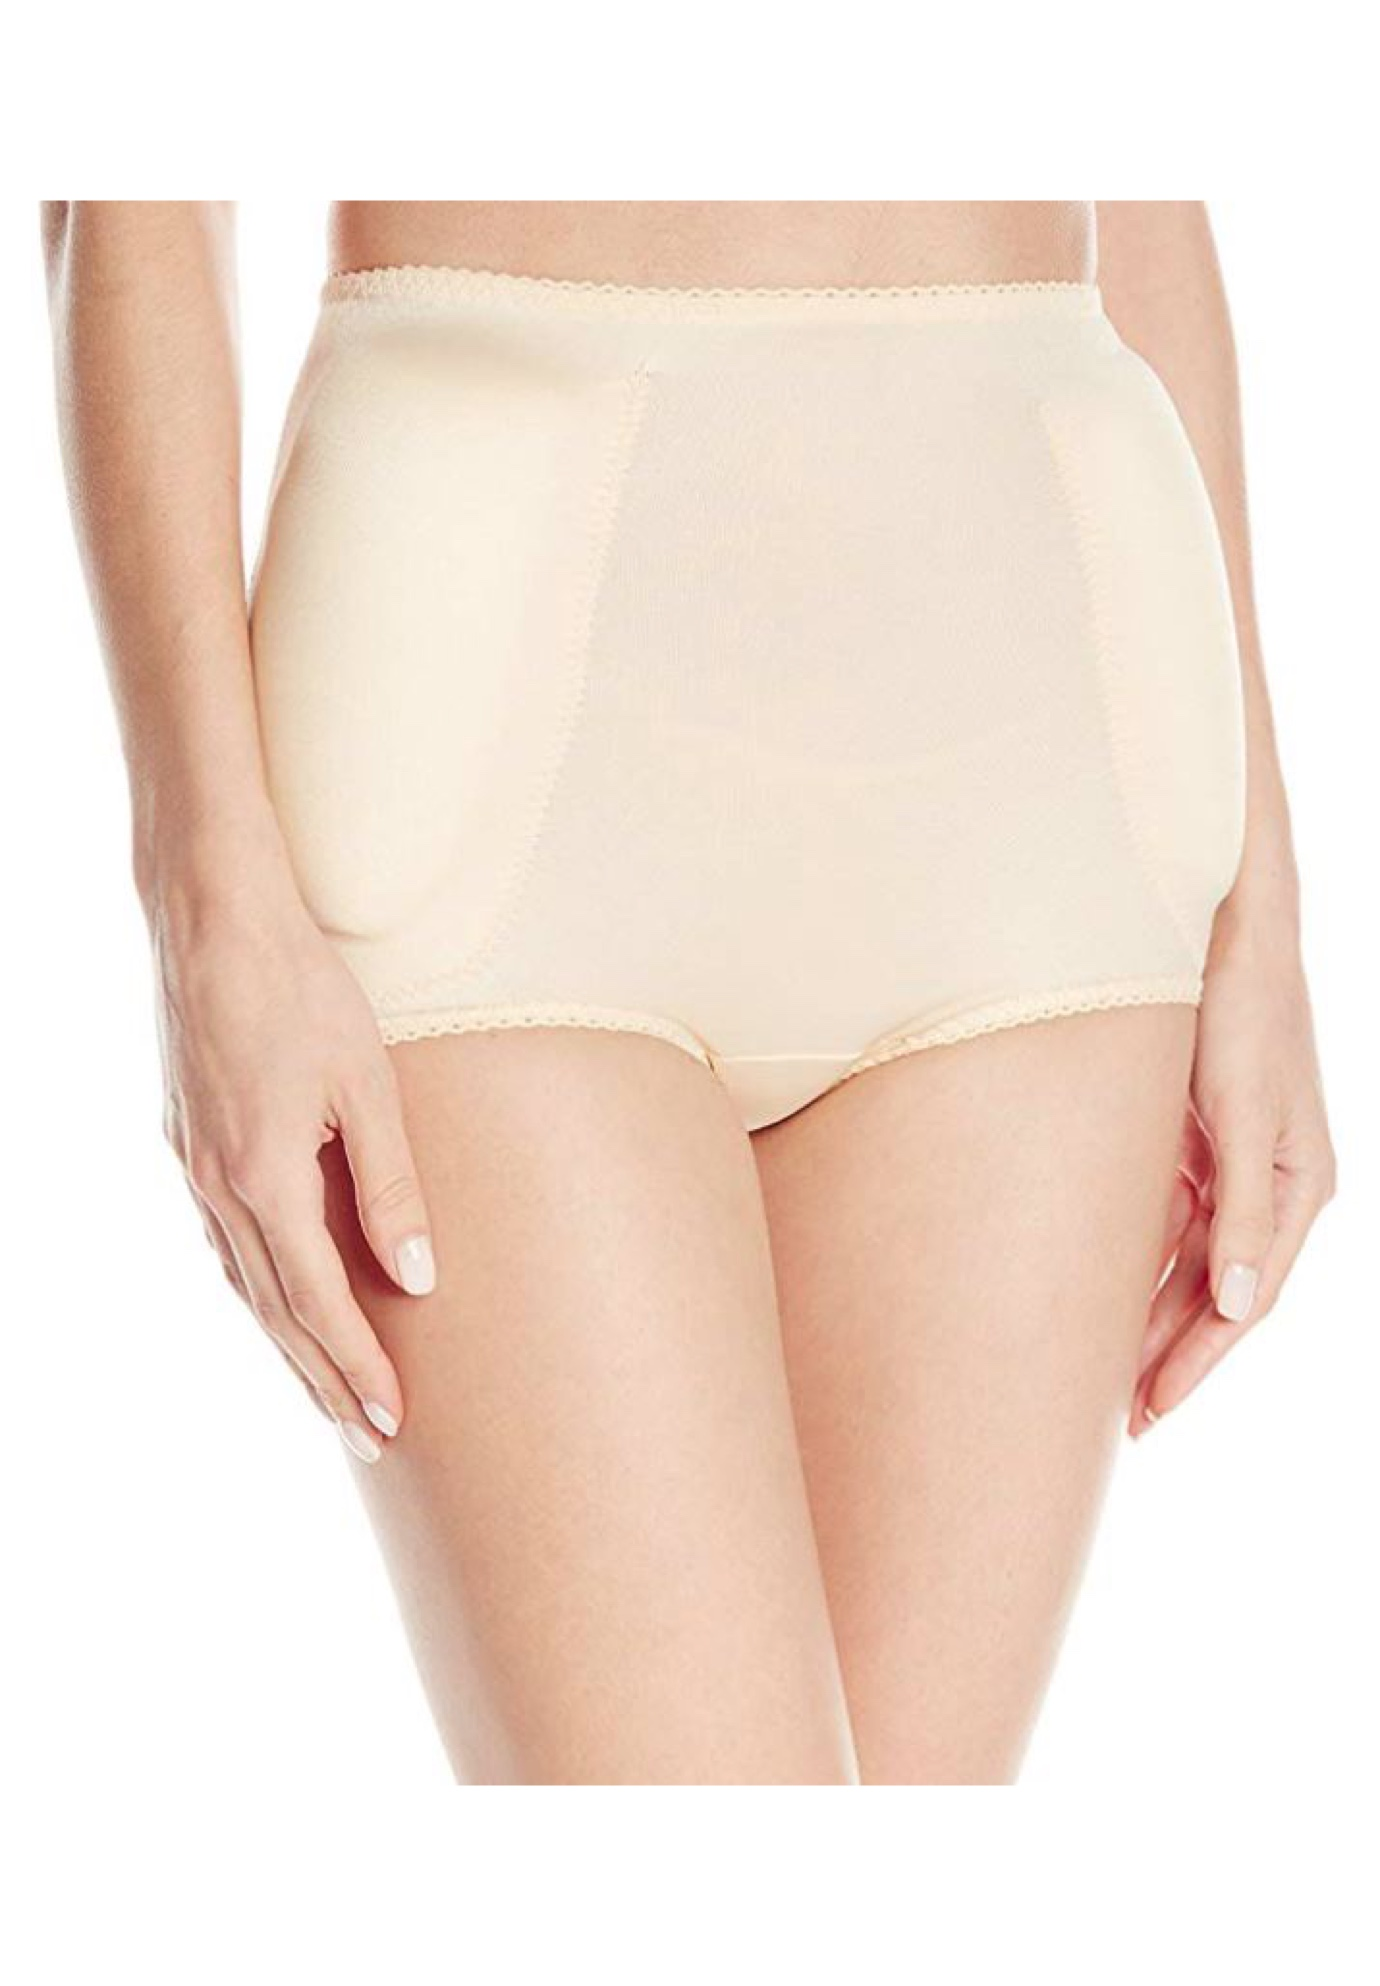 Rago 4 -Sided Padded Panty Brief,